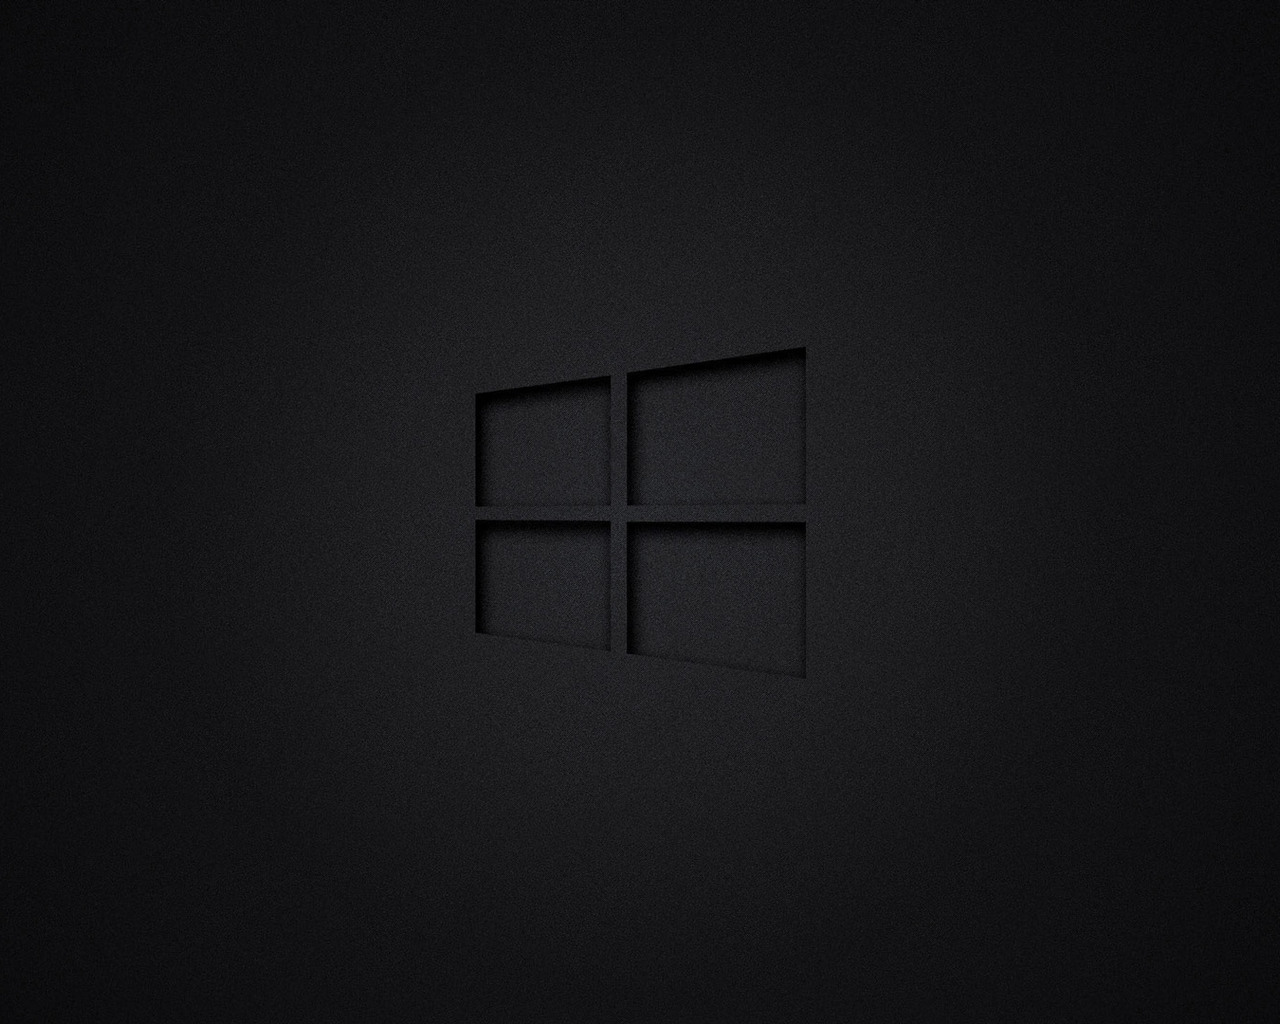 1280x1024 Windows 10 Dark 1280x1024 Resolution Hd 4k